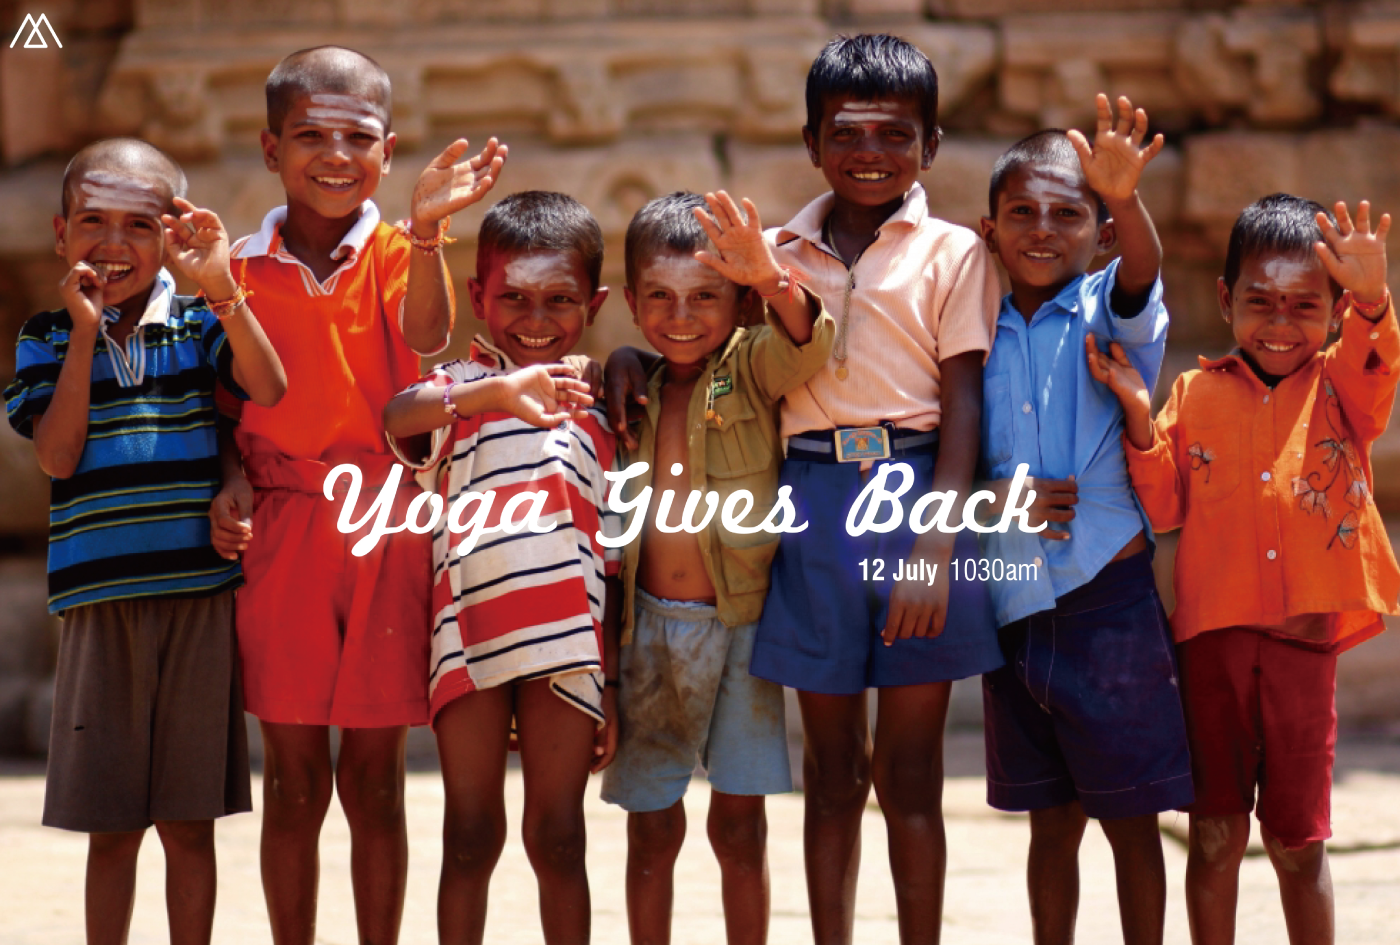 yoga gives back